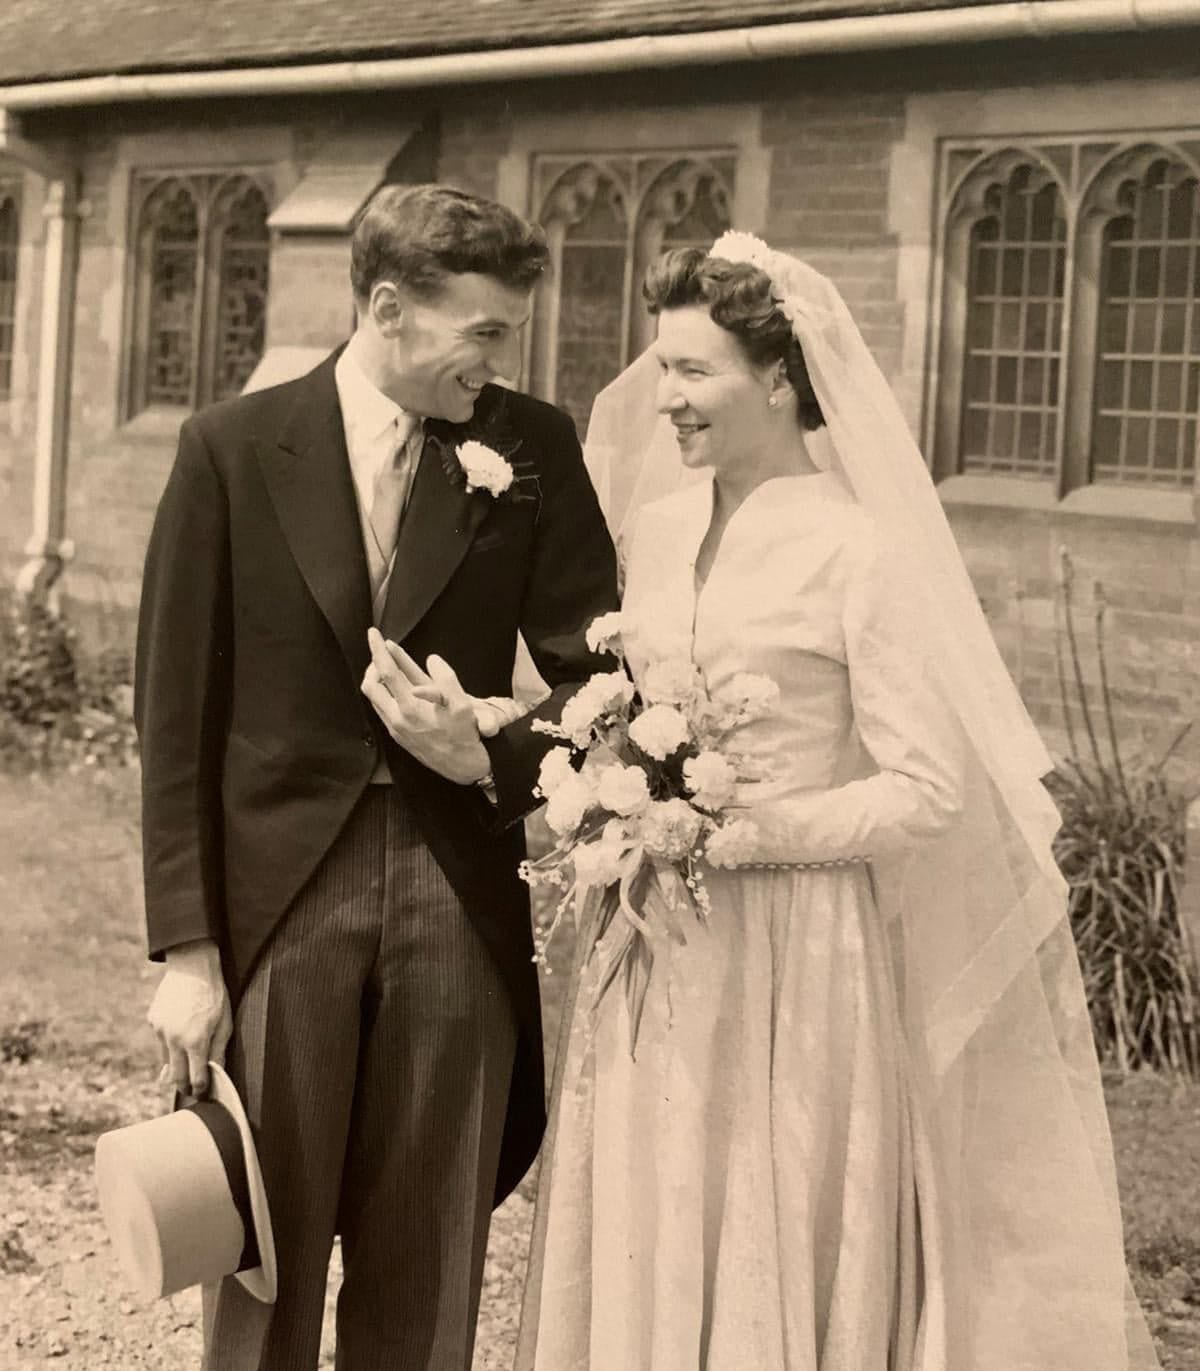 Wedding-Music---Old-Fashioned-Music-choices-Groom-and-Bride-in-1958